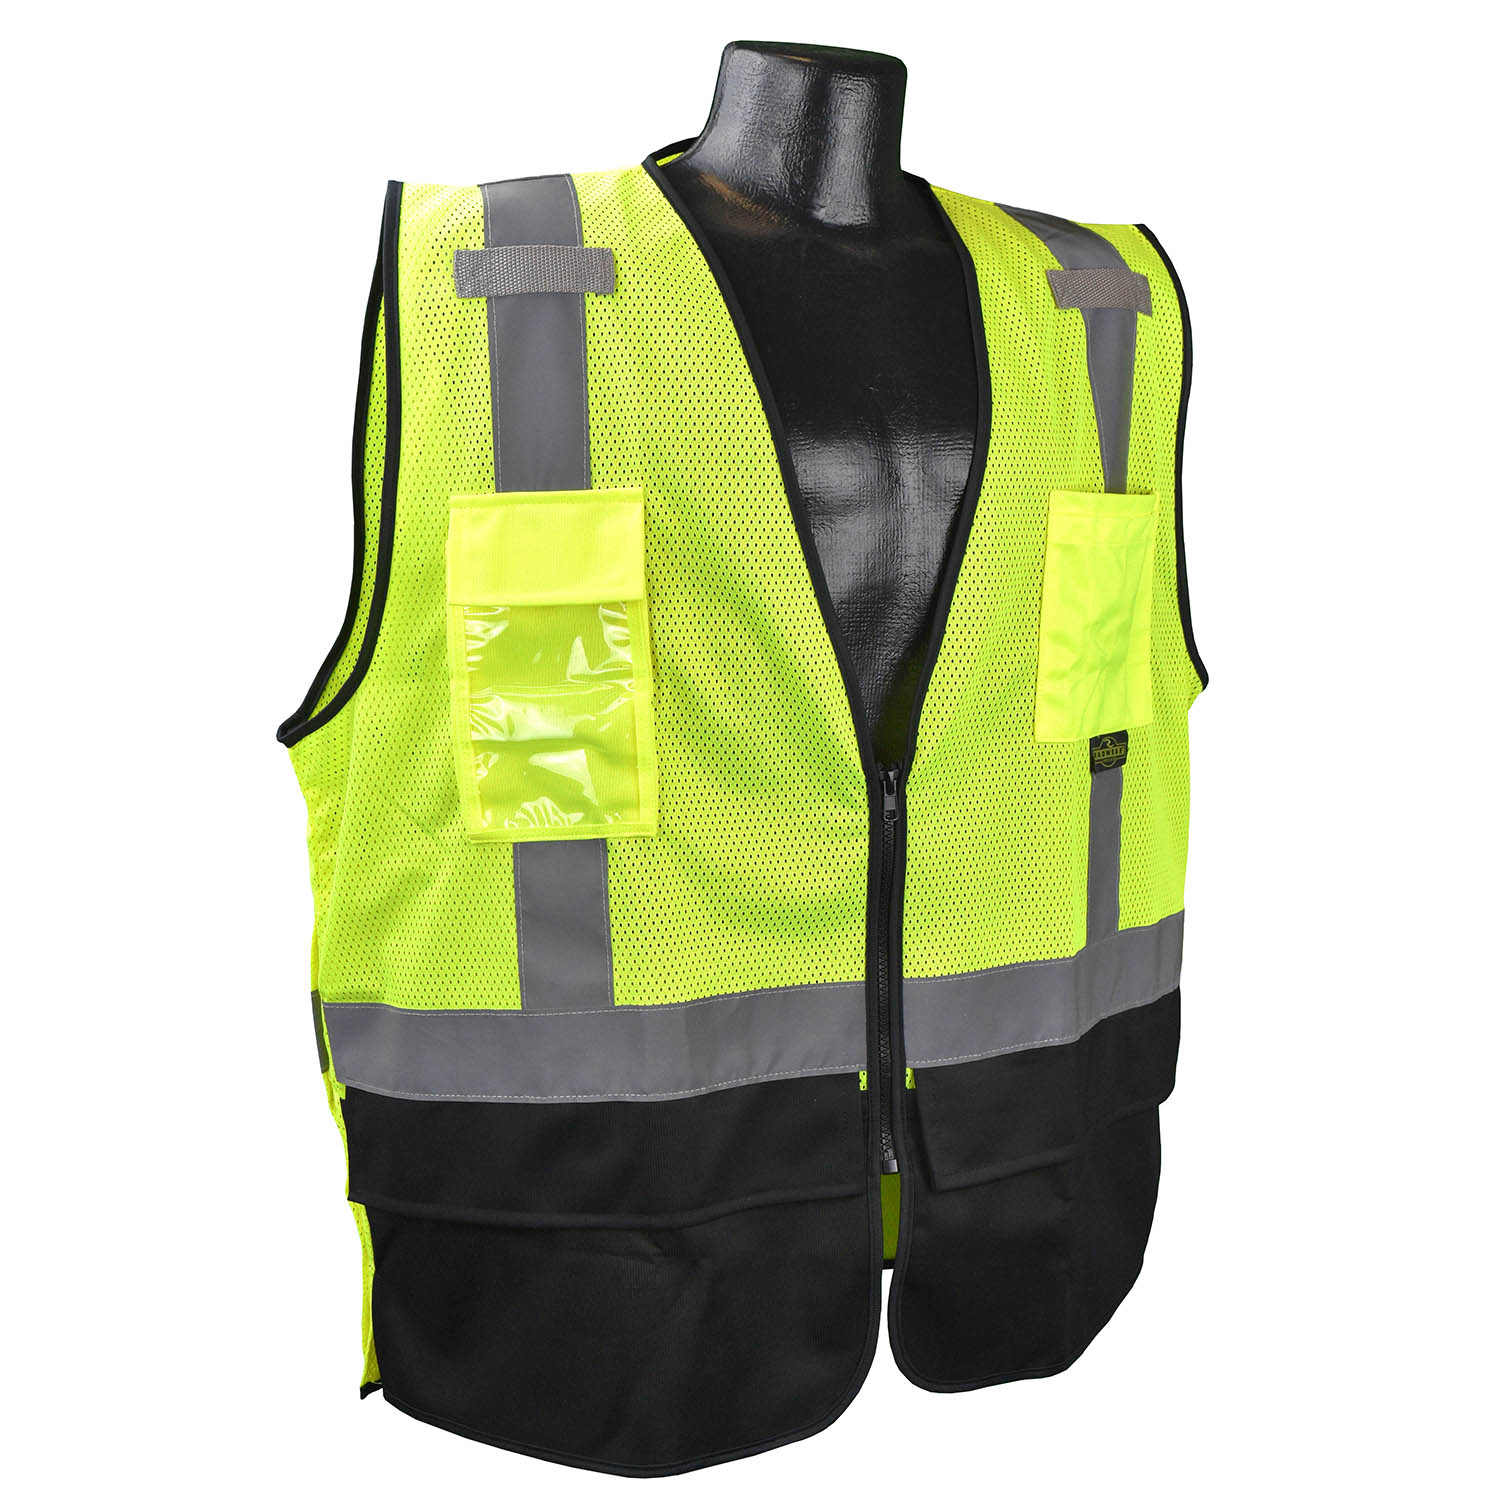 Radians SV7B Surveyor Type R Class 2 Safety Vest